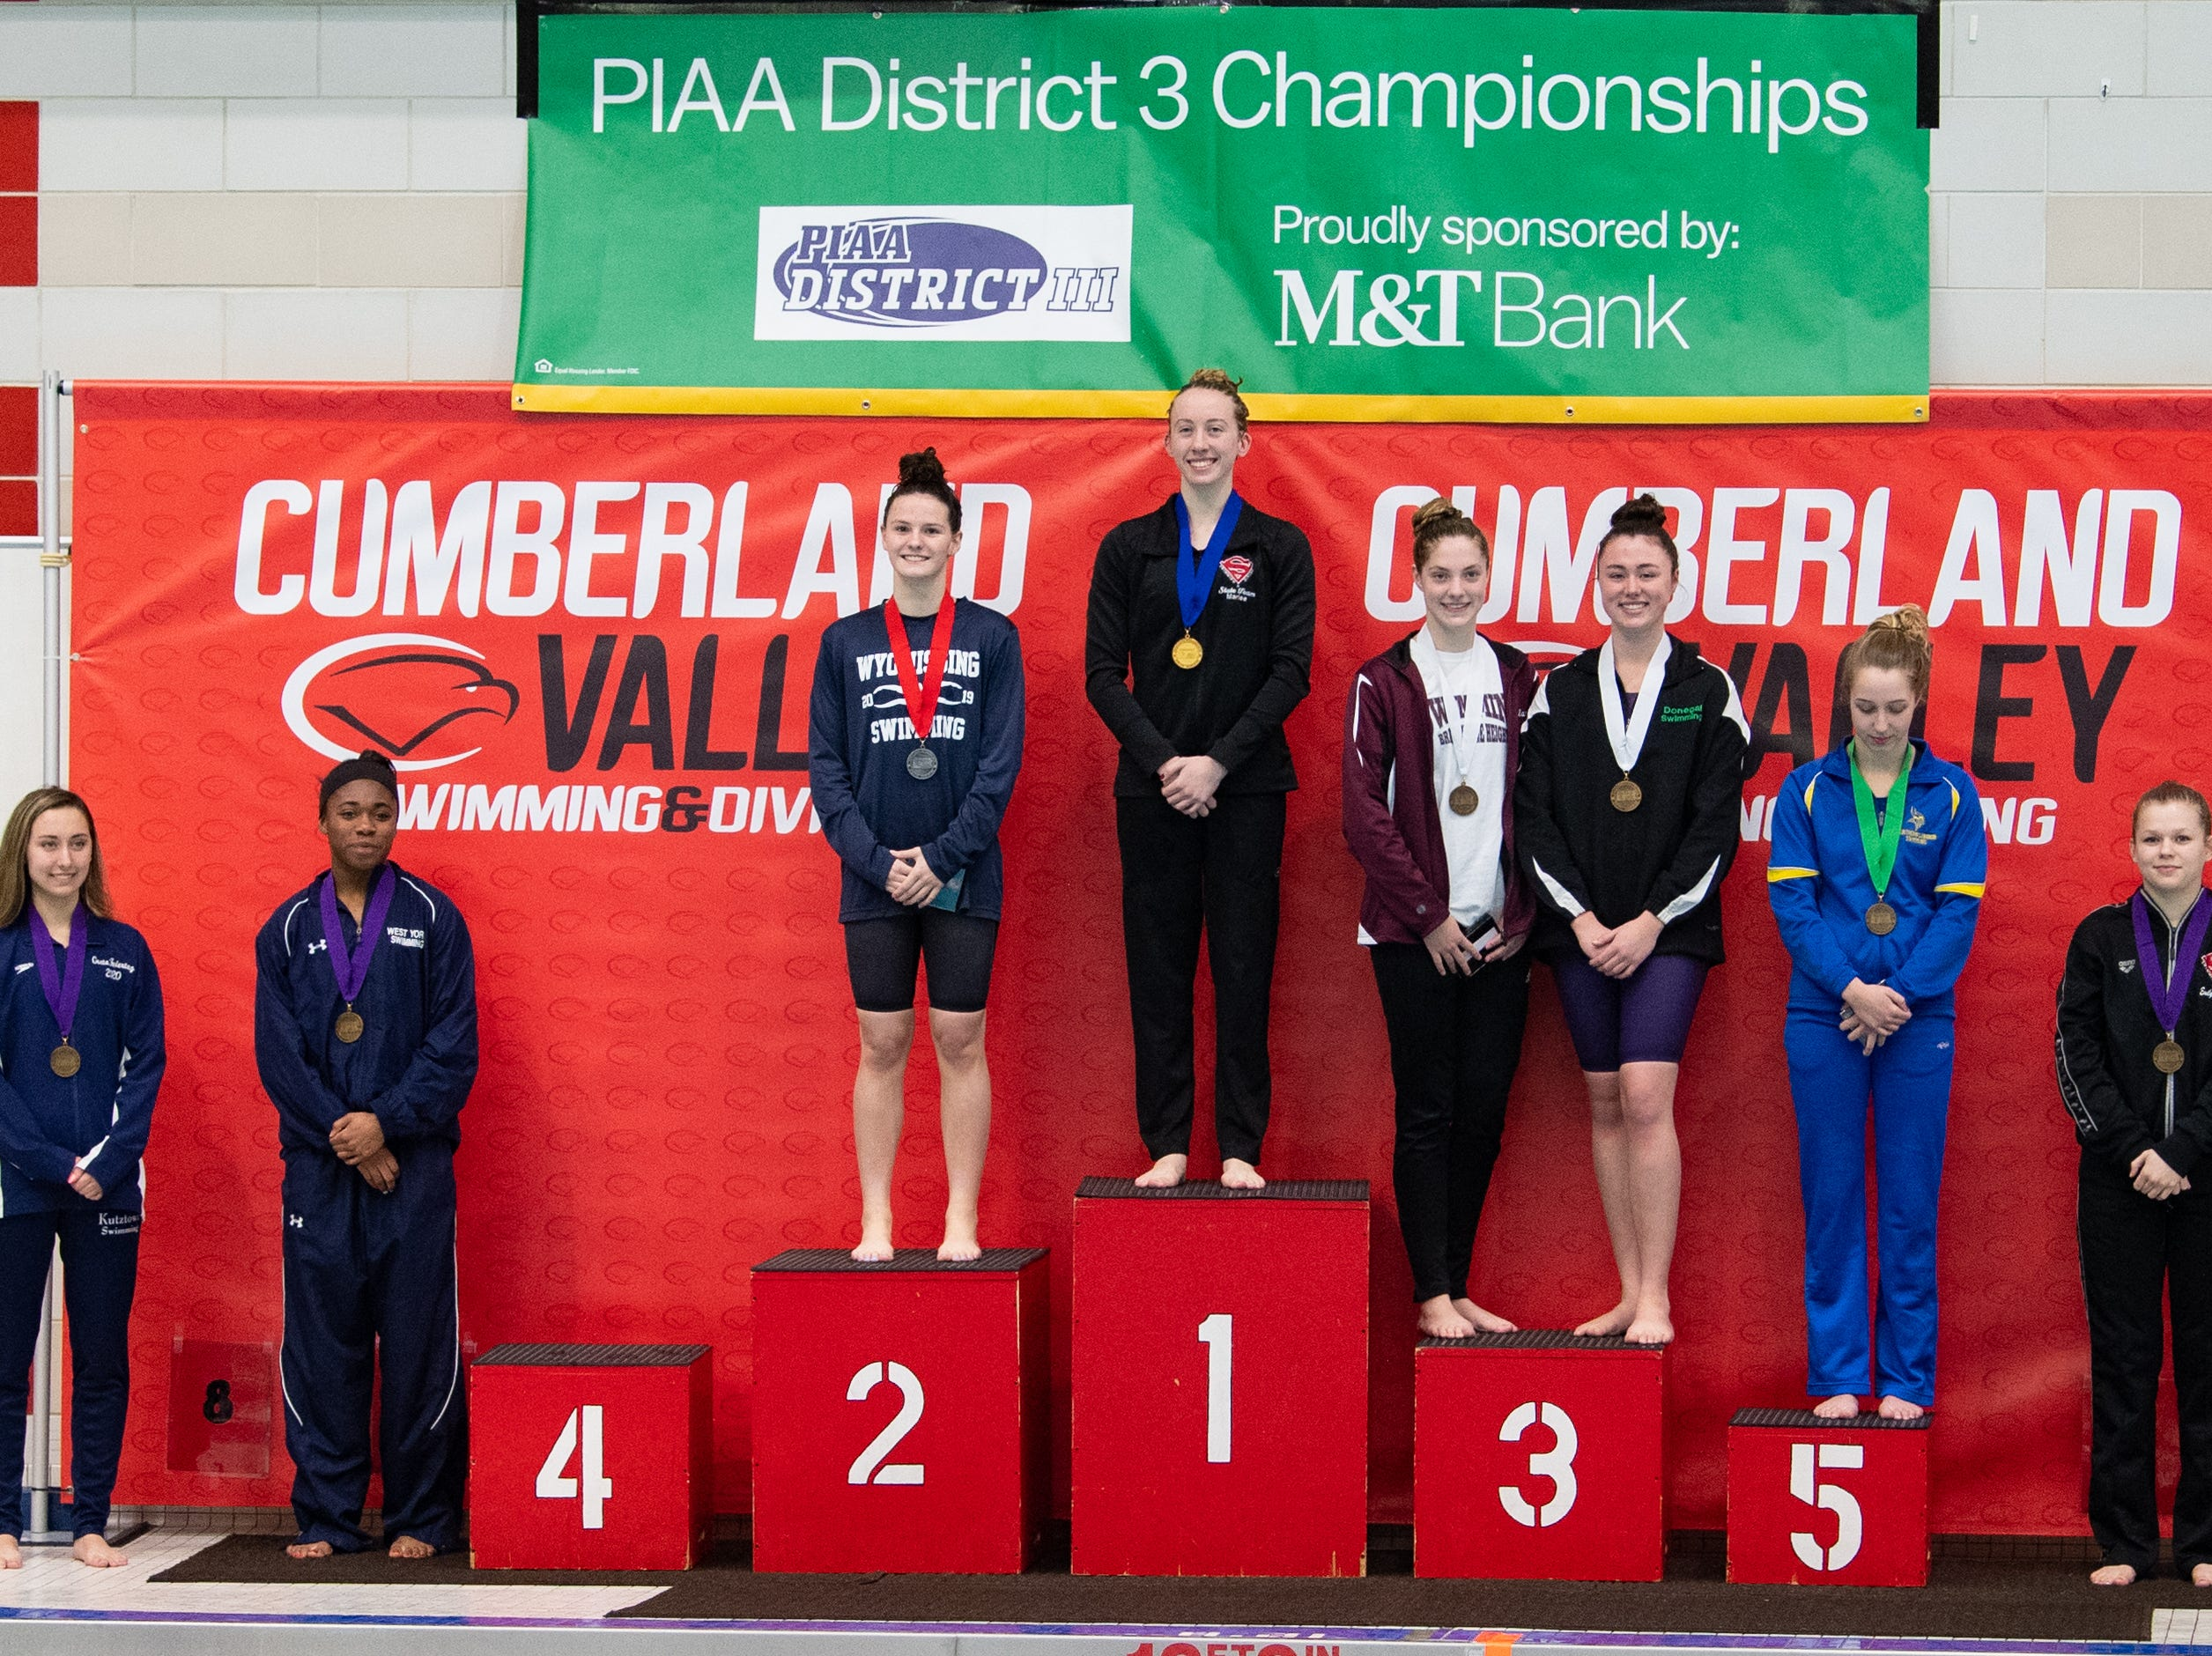 The winners of the Girls 50 Yard Freestyle accept their medals during the PIAA District 3 Girls AA Championship, March 1, 2019 at Cumberland Valley High School.